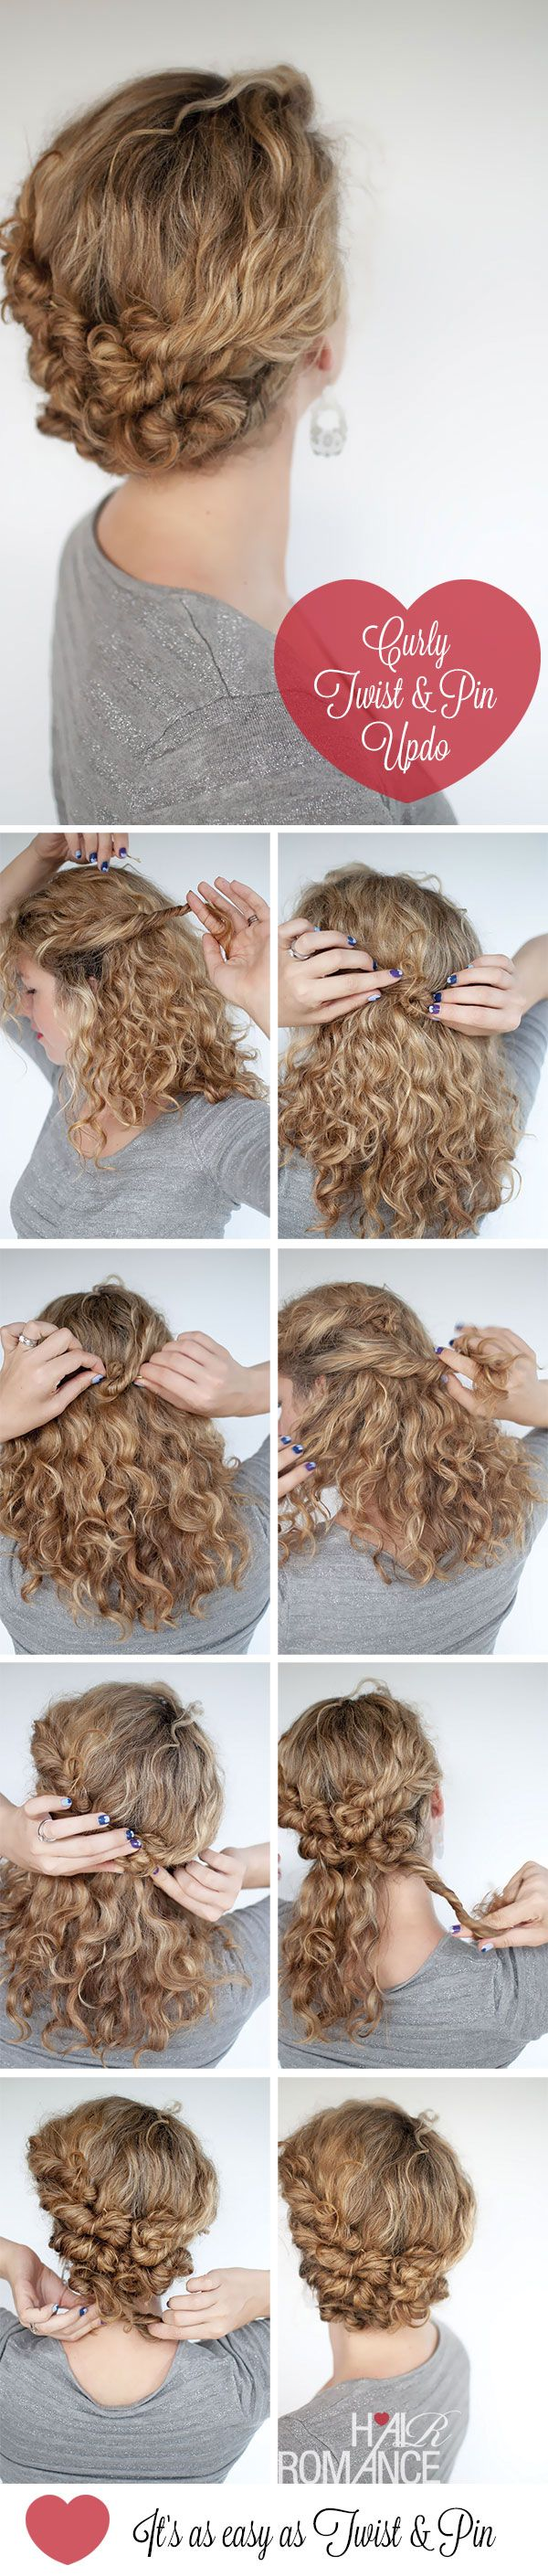 twist and curls hairstyles : Curly Twist & Pin Hairstyle And her curls are natural!